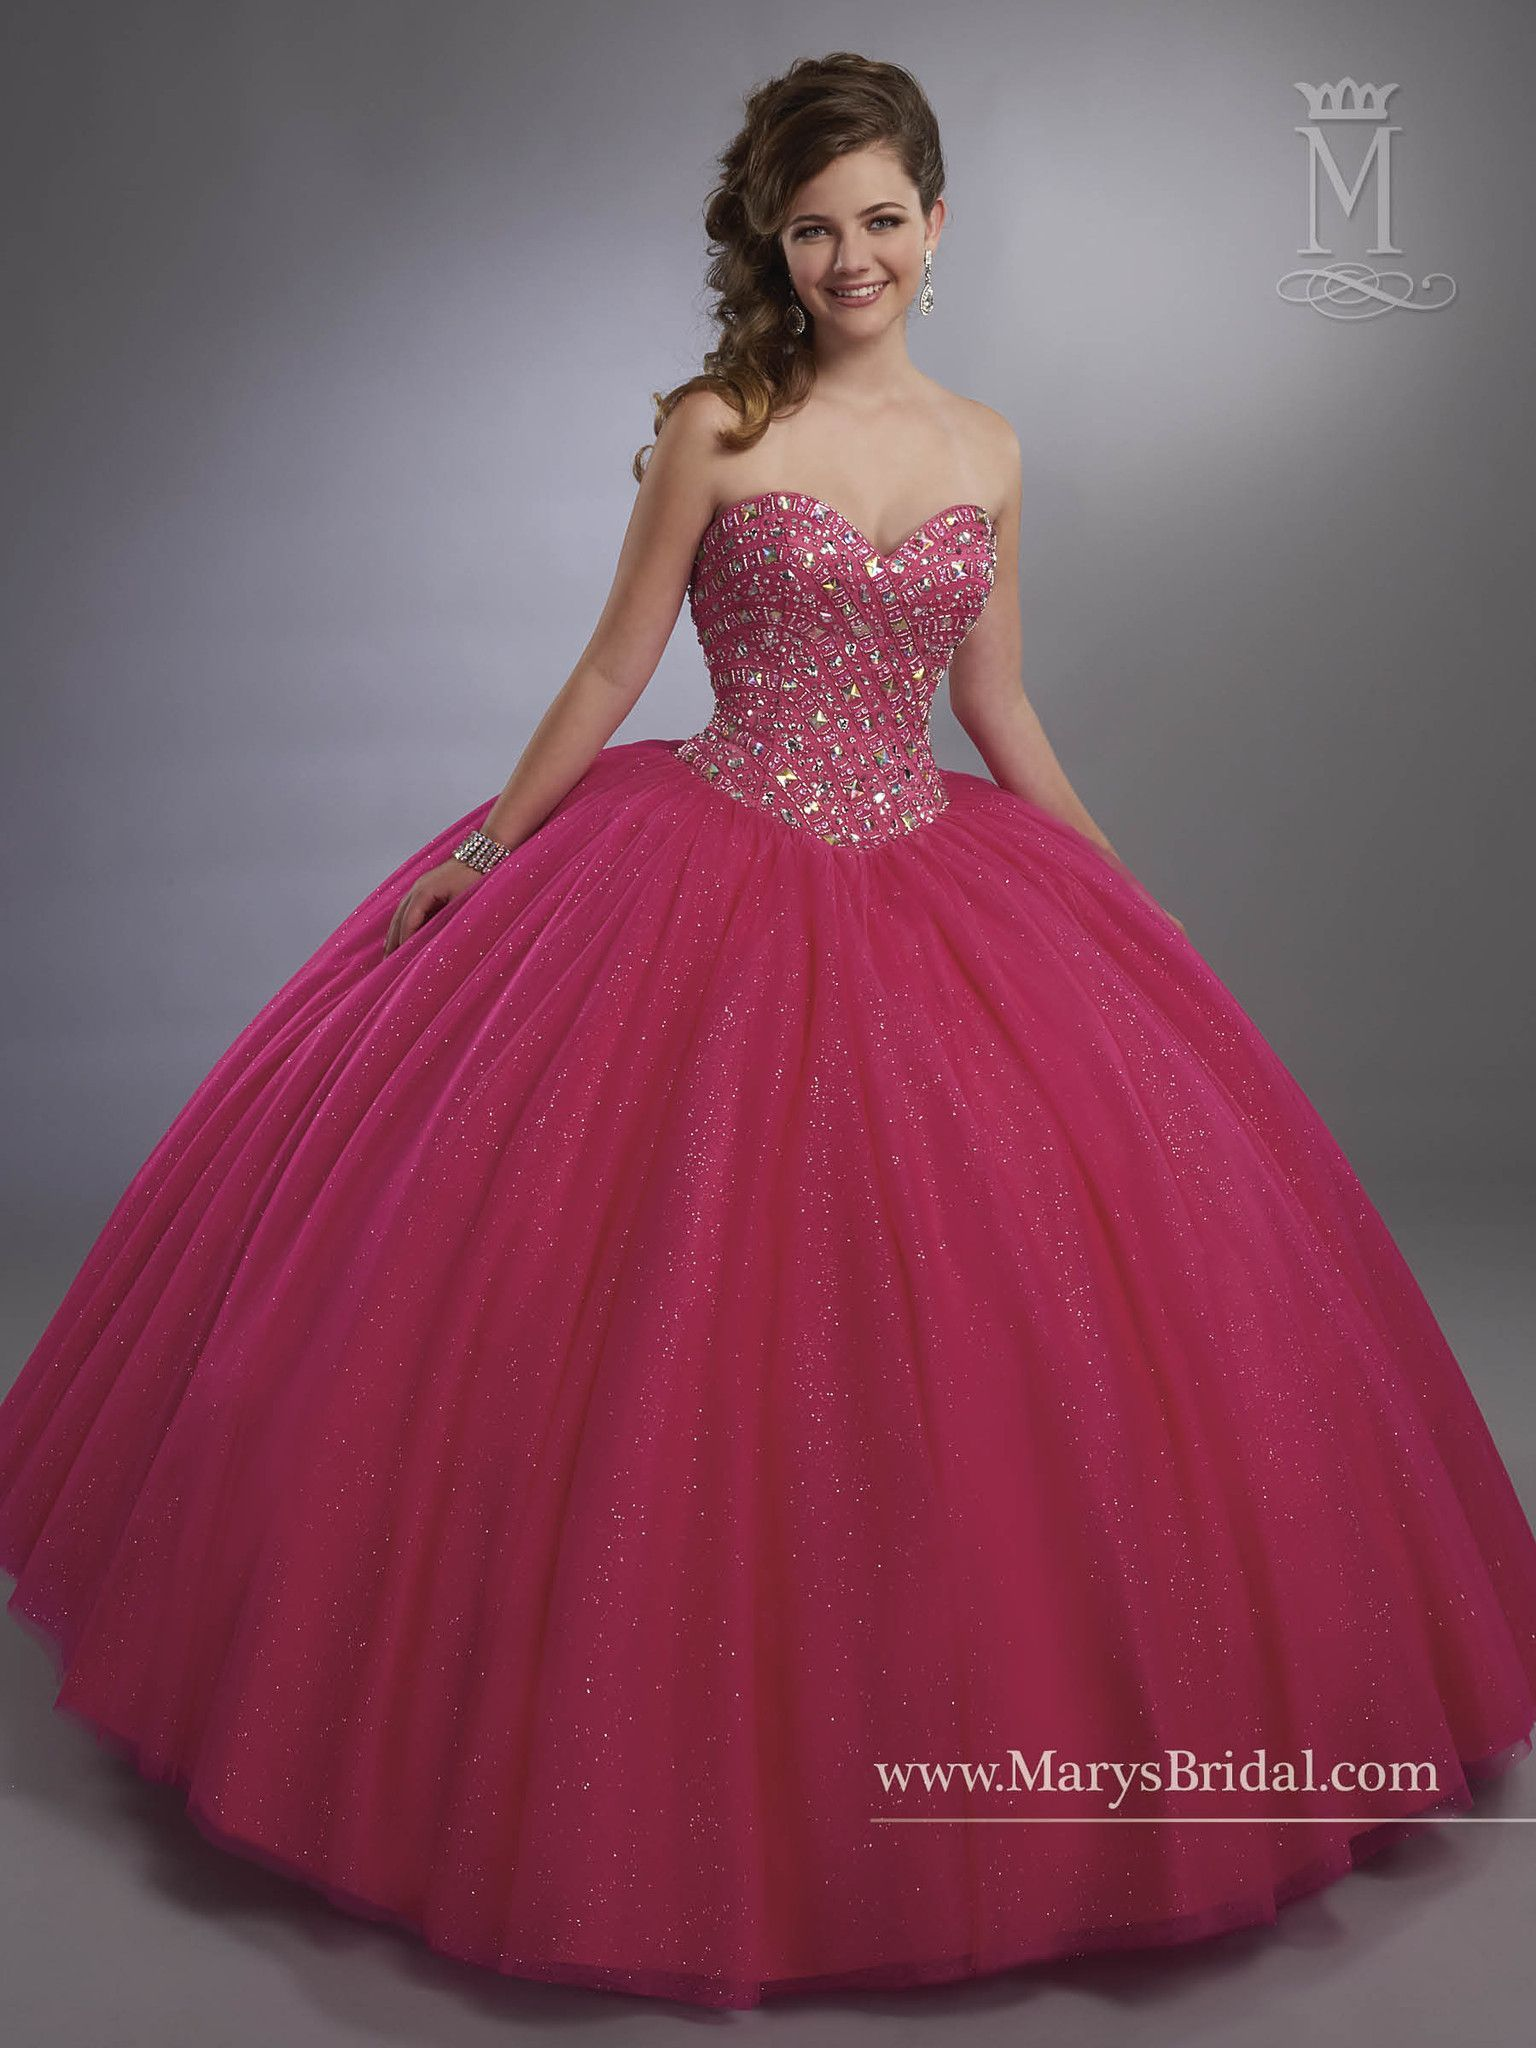 a7afdcc8201 Mary s Bridal Beloving Collection Quinceanera Dress Style 4795 in ...